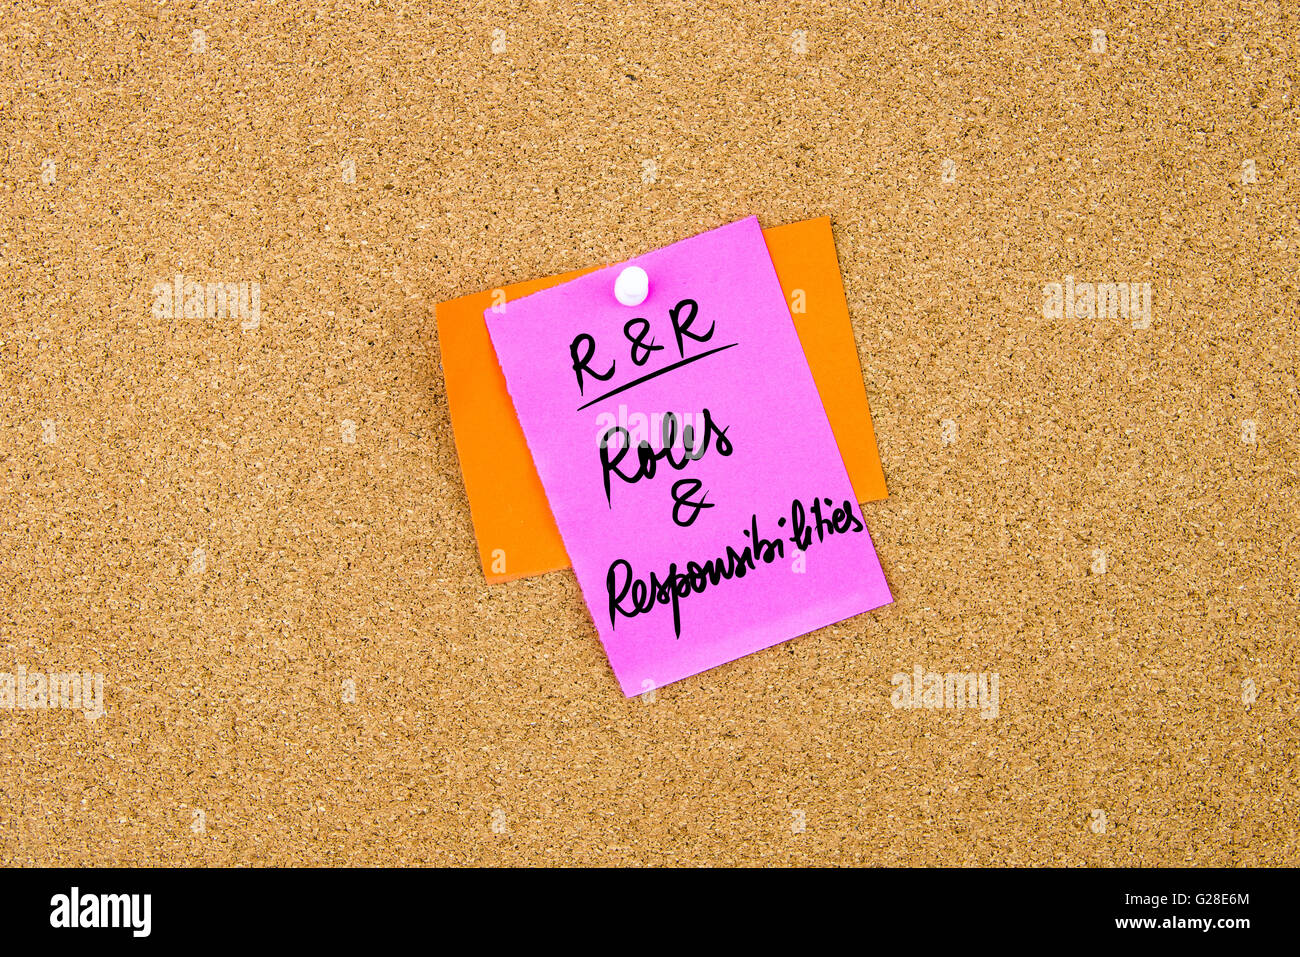 Business Acronym RR Roles and Responsibilities written on paper note pinned on cork board with white thumbtack, - Stock Image